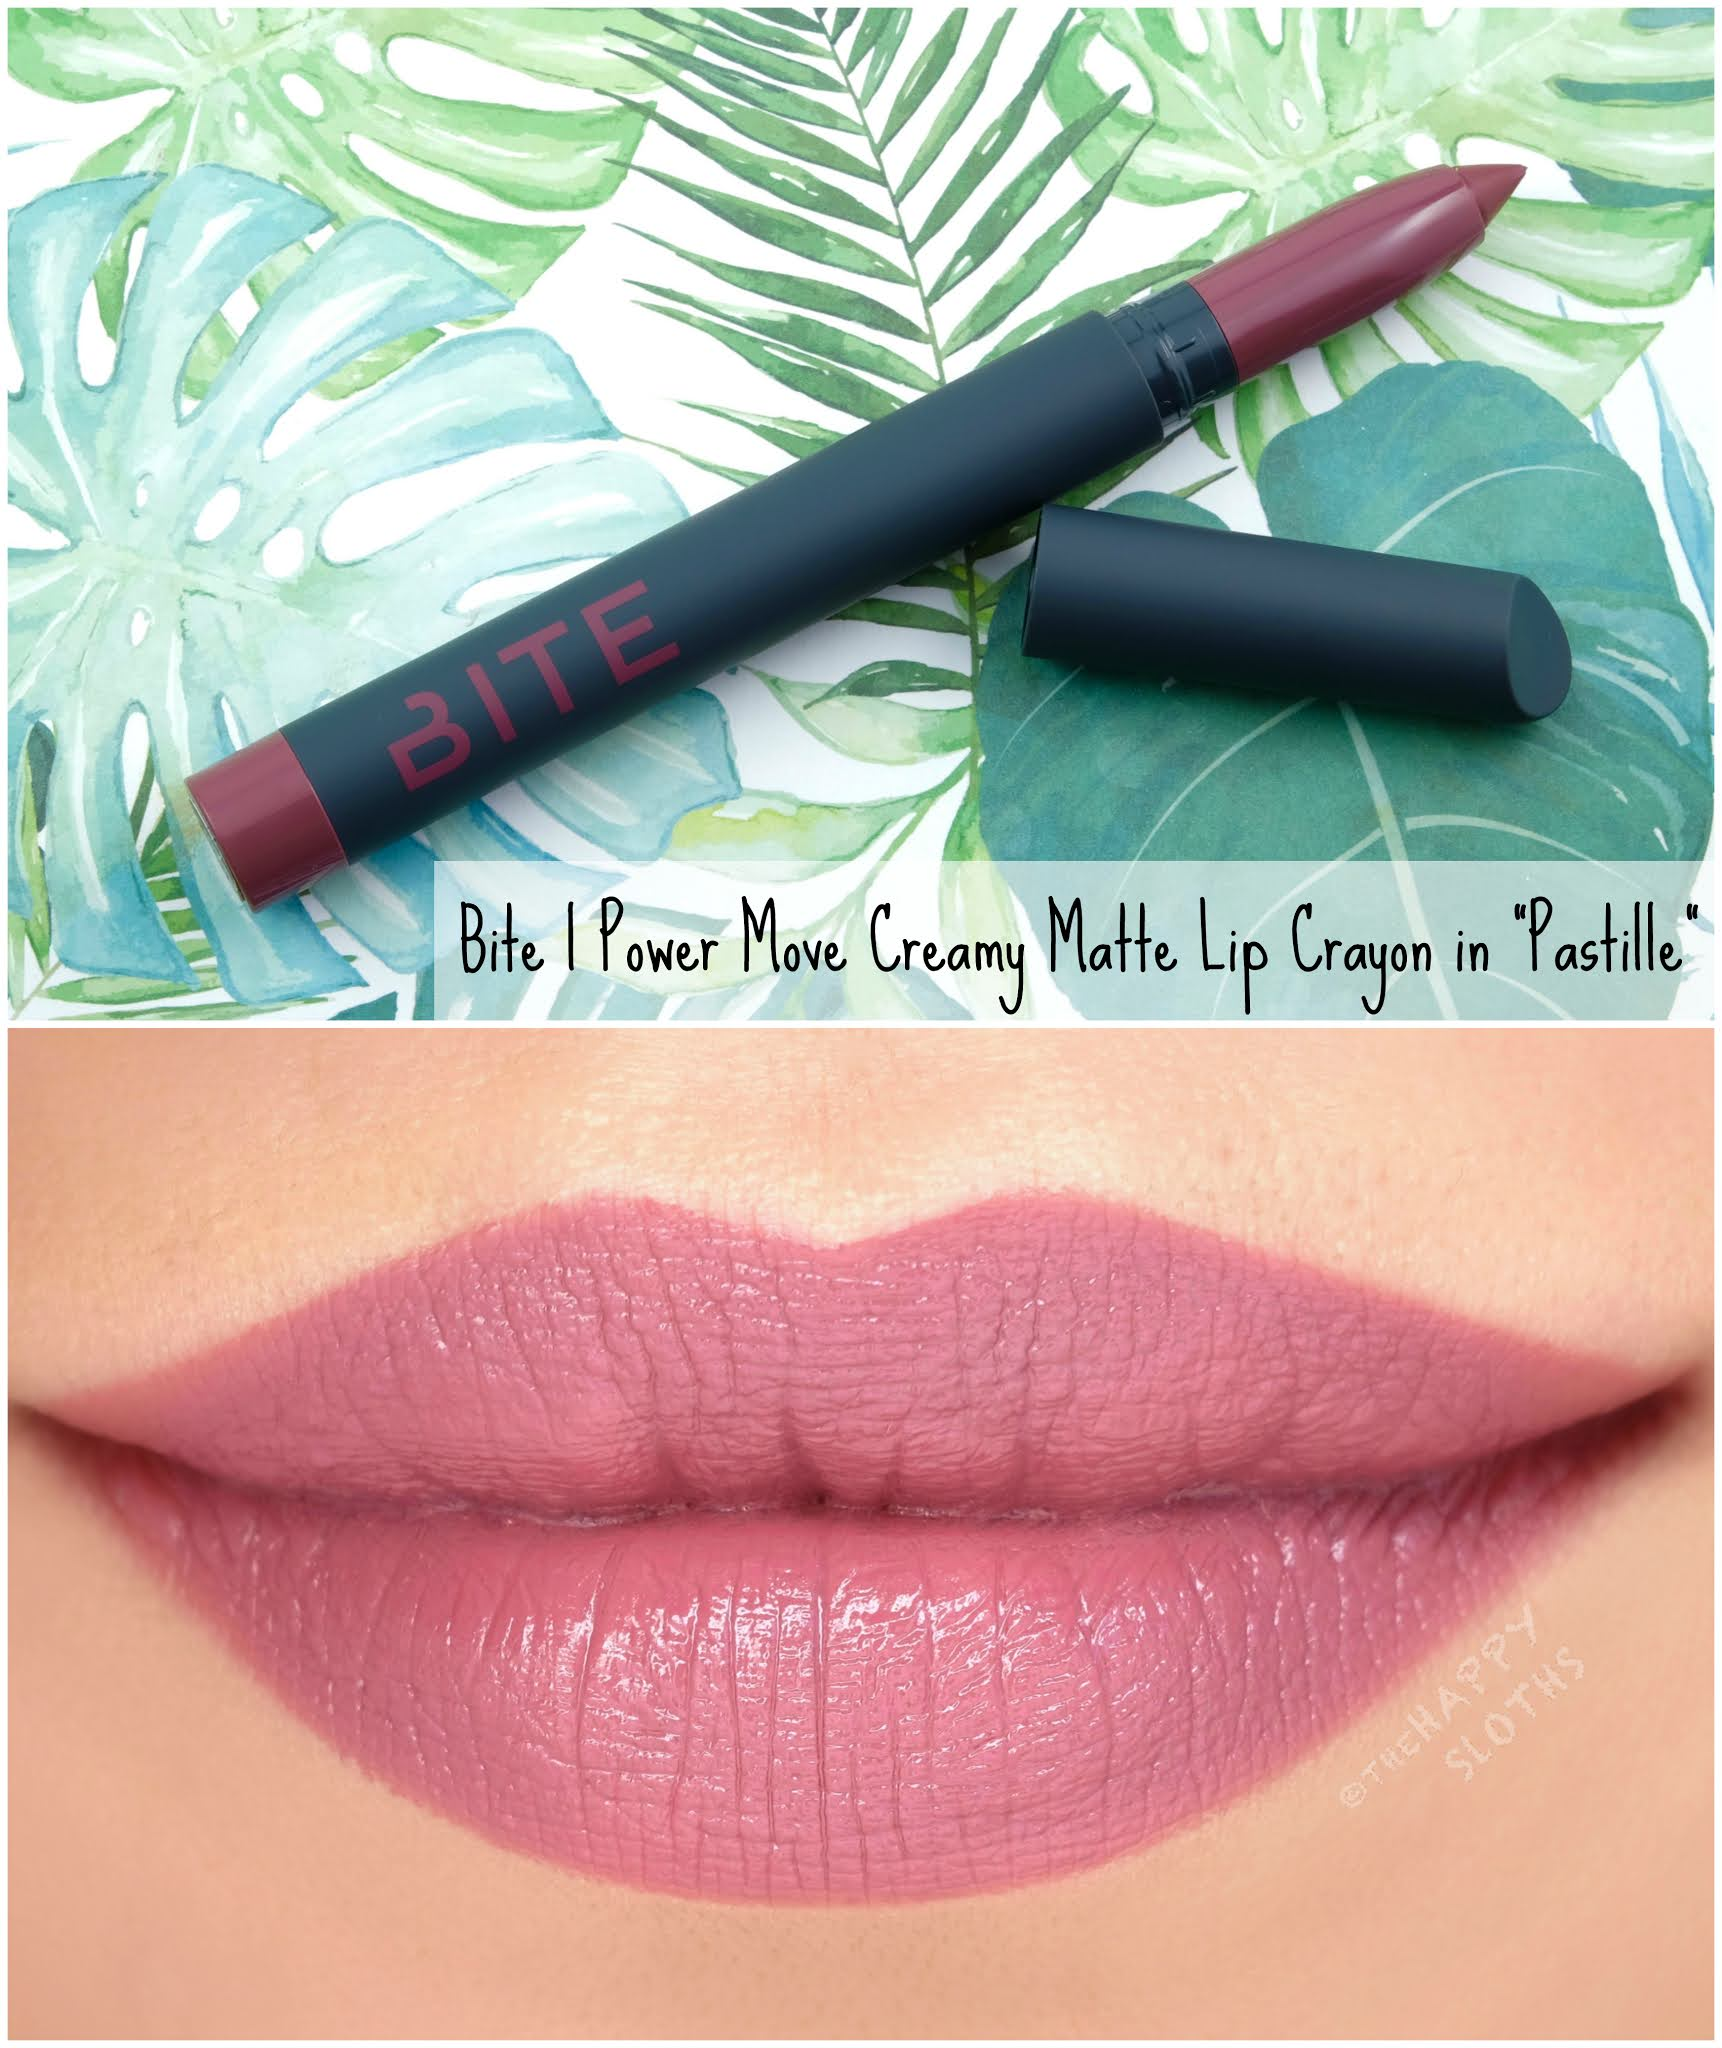 Bite Beauty | Power Move Creamy Matte Lip Crayon: Review and Swatches